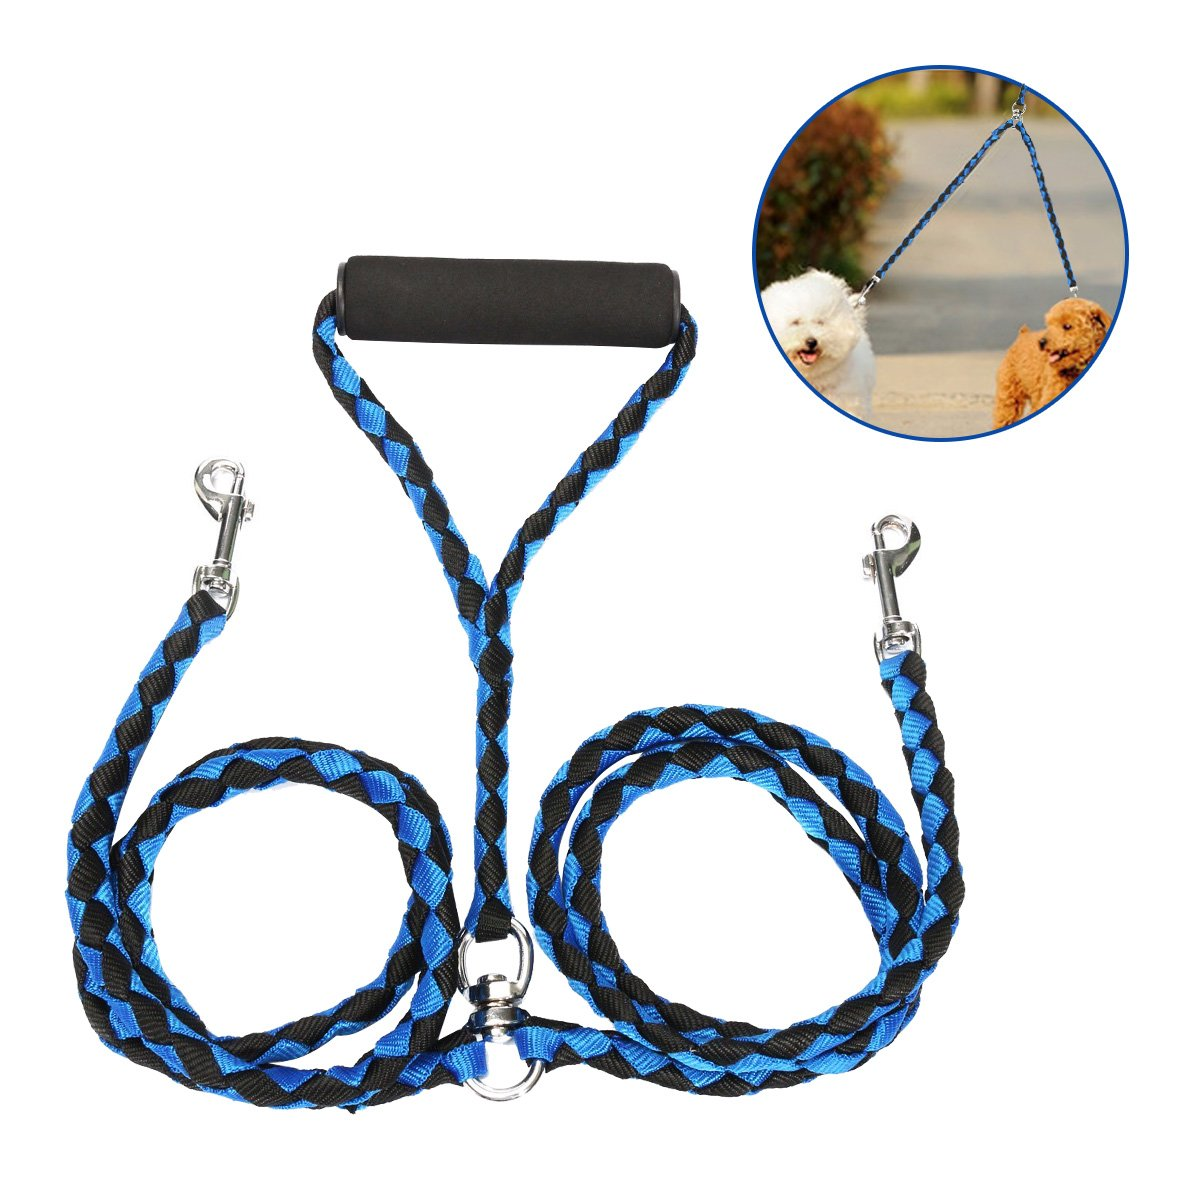 Dog Leash 2 Dogs,Focuspet Double Dog Leash 4.6 ft 2 Way No Tangle Coupler Double Pet Dog Puppy Lead Leashes Twin Leash For Large Medium Small Dogs chic